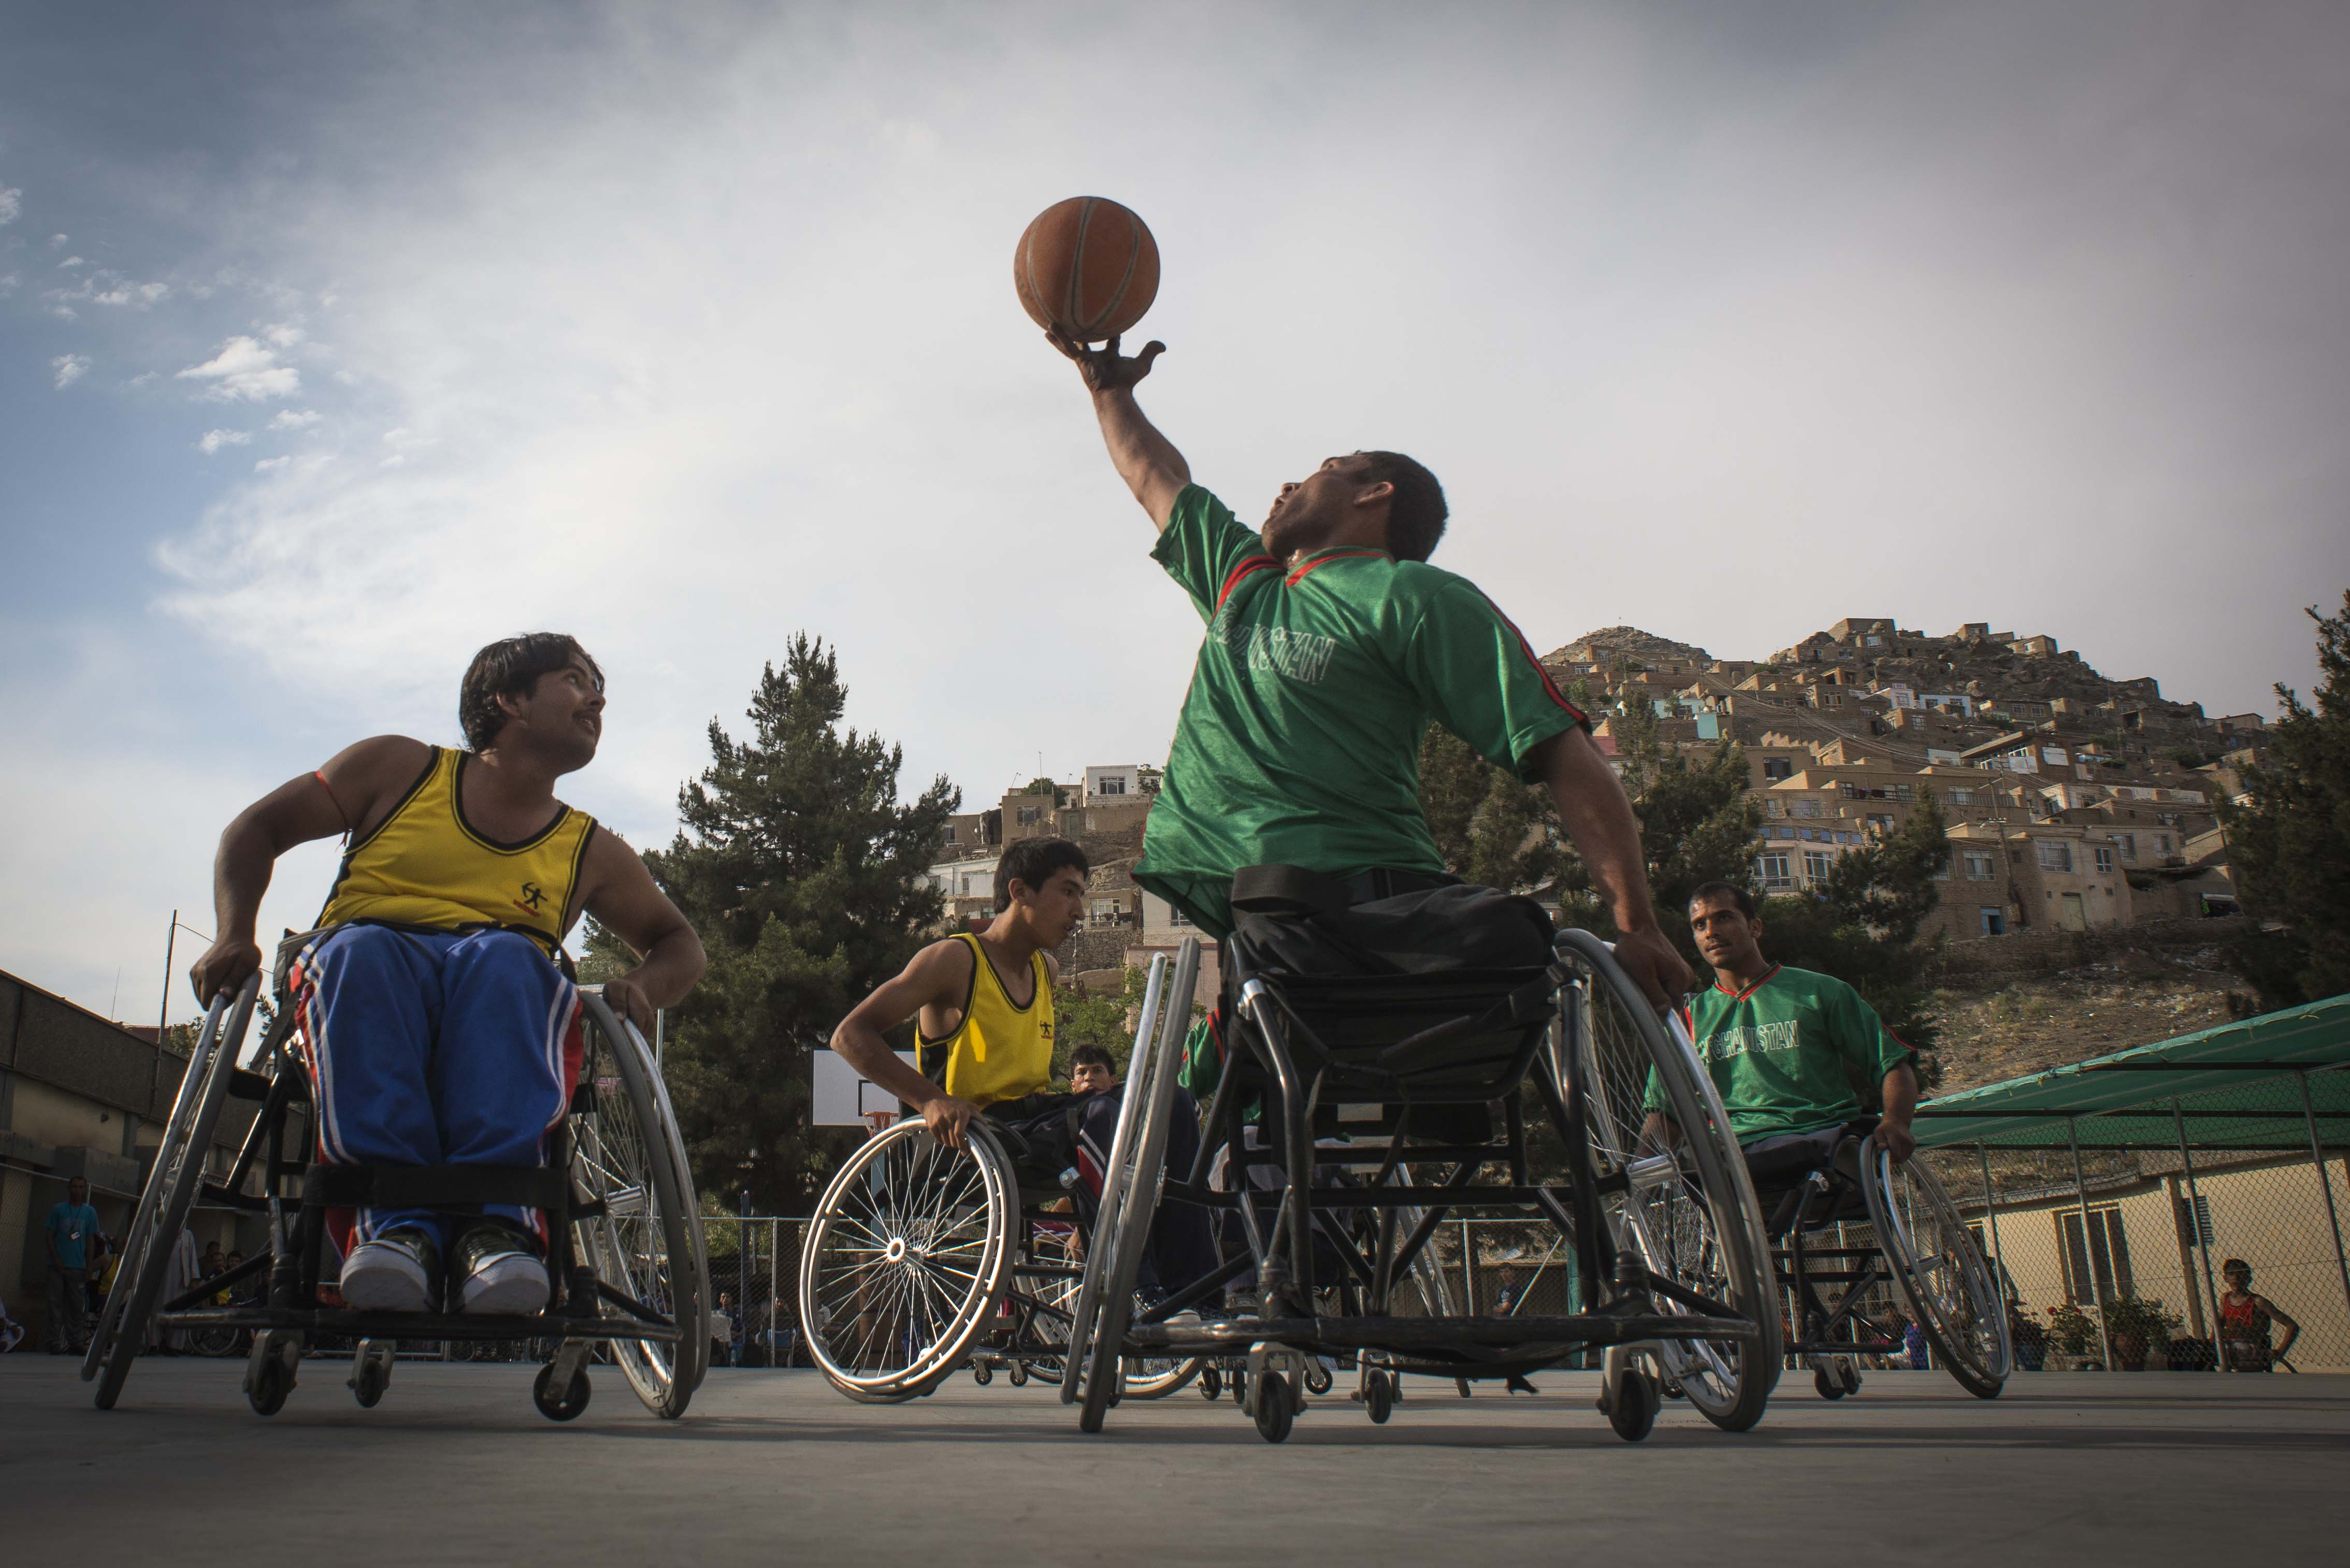 The Afghanistan wheelchair basketball team